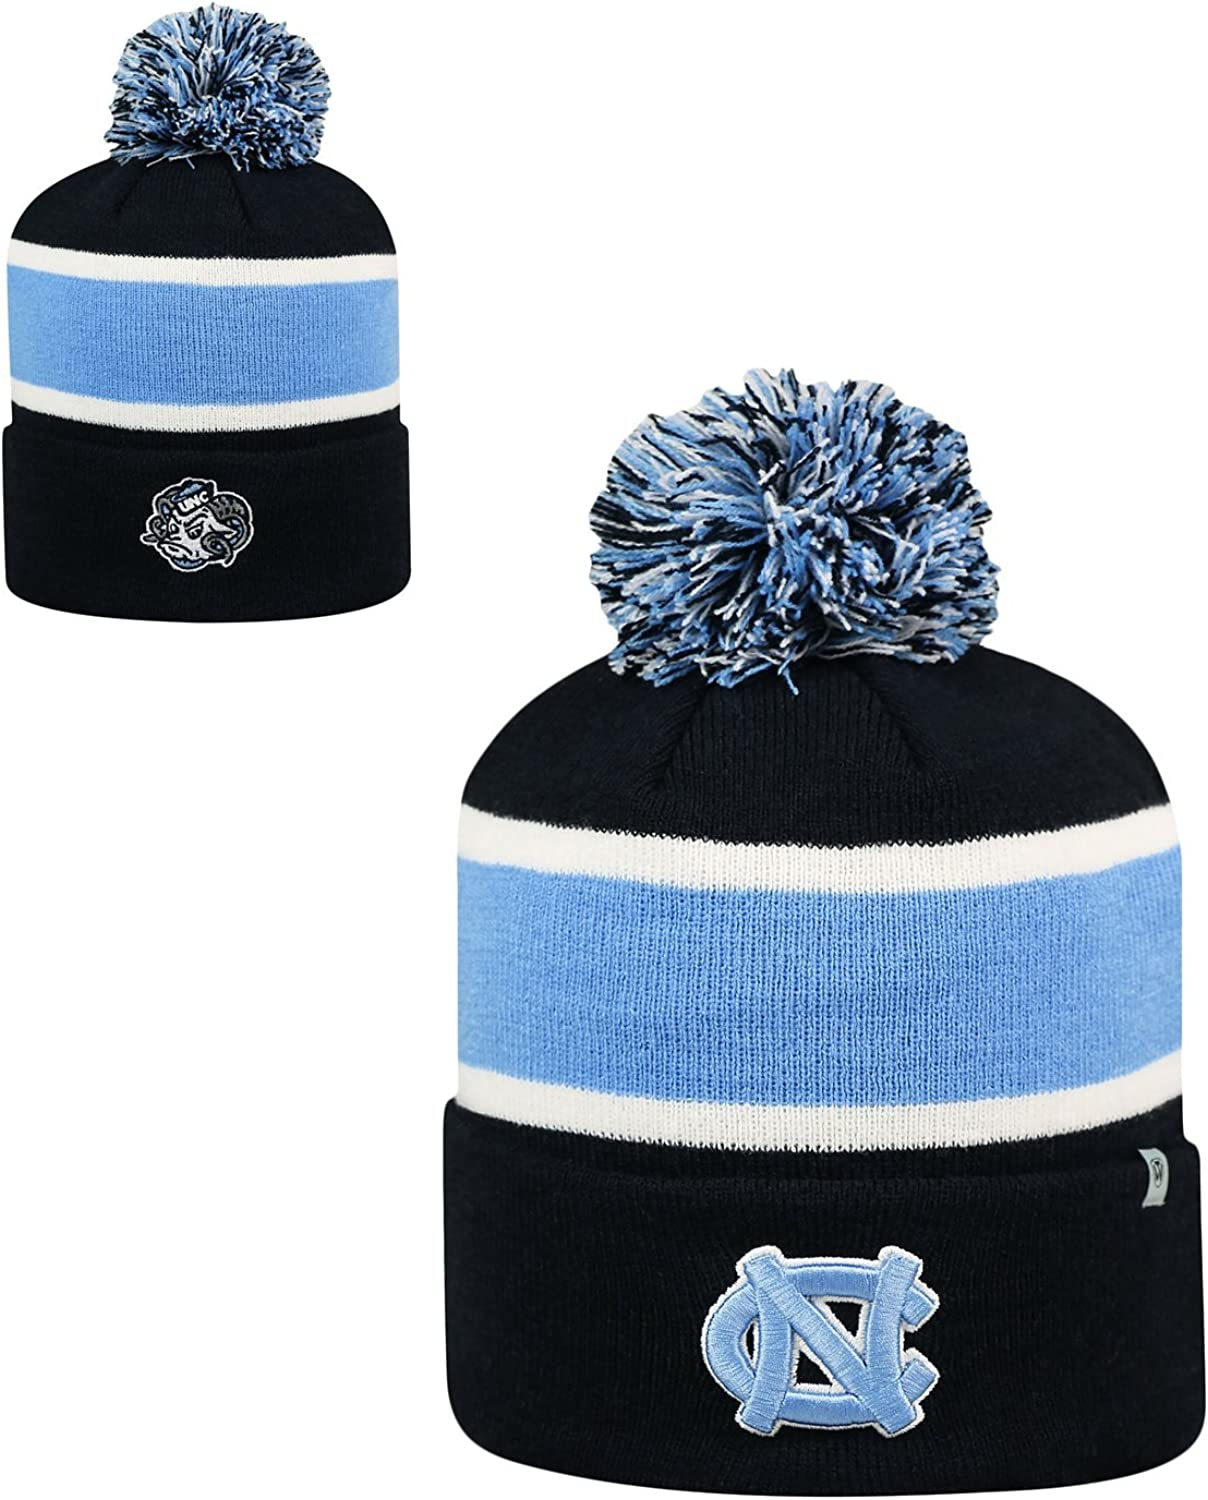 Top of the World 2-Sided Whirl Beanie Hat with POM POM NCAA Cuffed Knit Cap